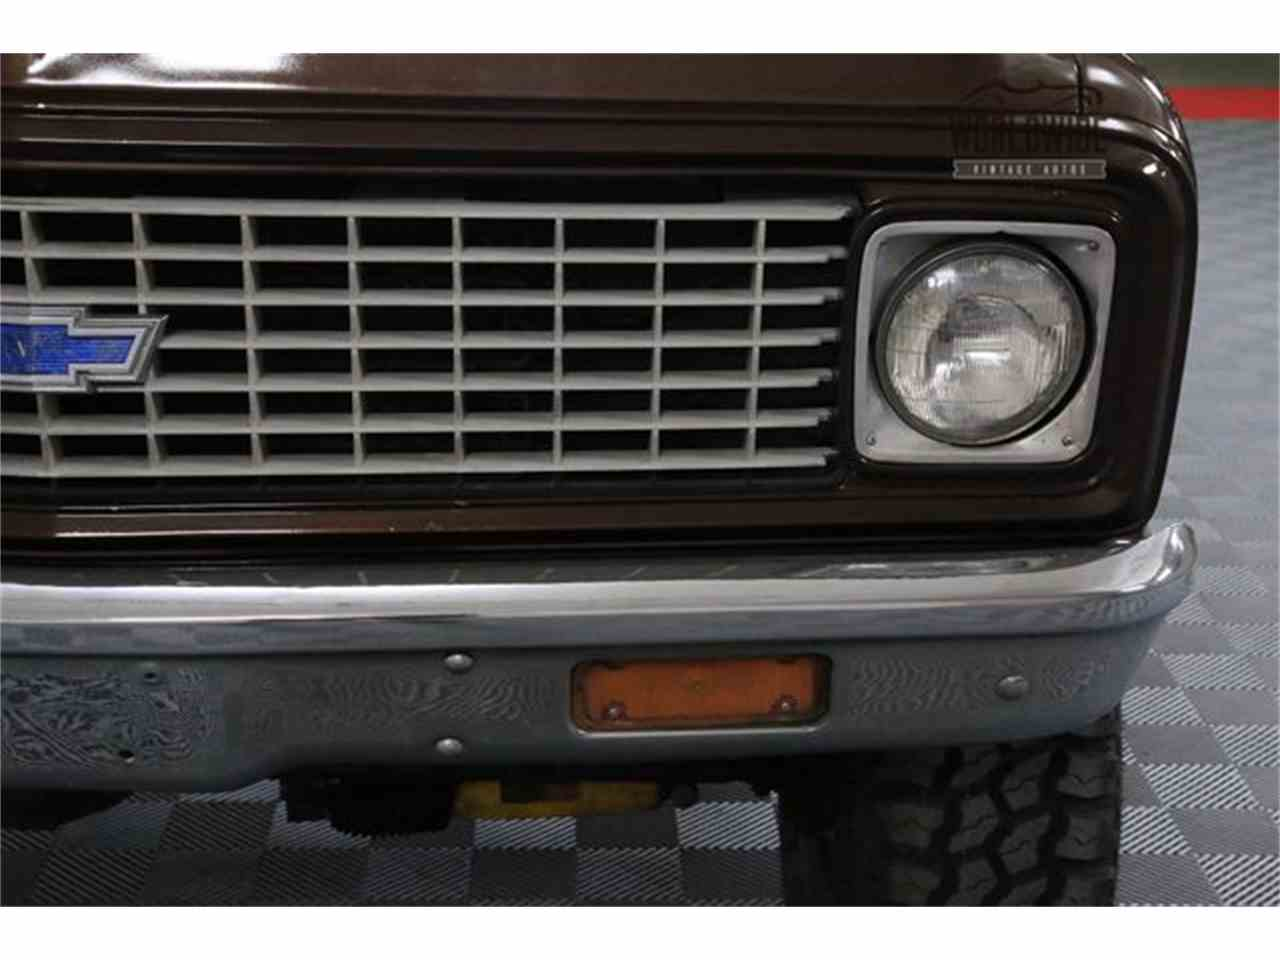 Large Picture of 1971 Chevrolet Blazer located in Colorado - $24,900.00 Offered by Worldwide Vintage Autos - LI5Q